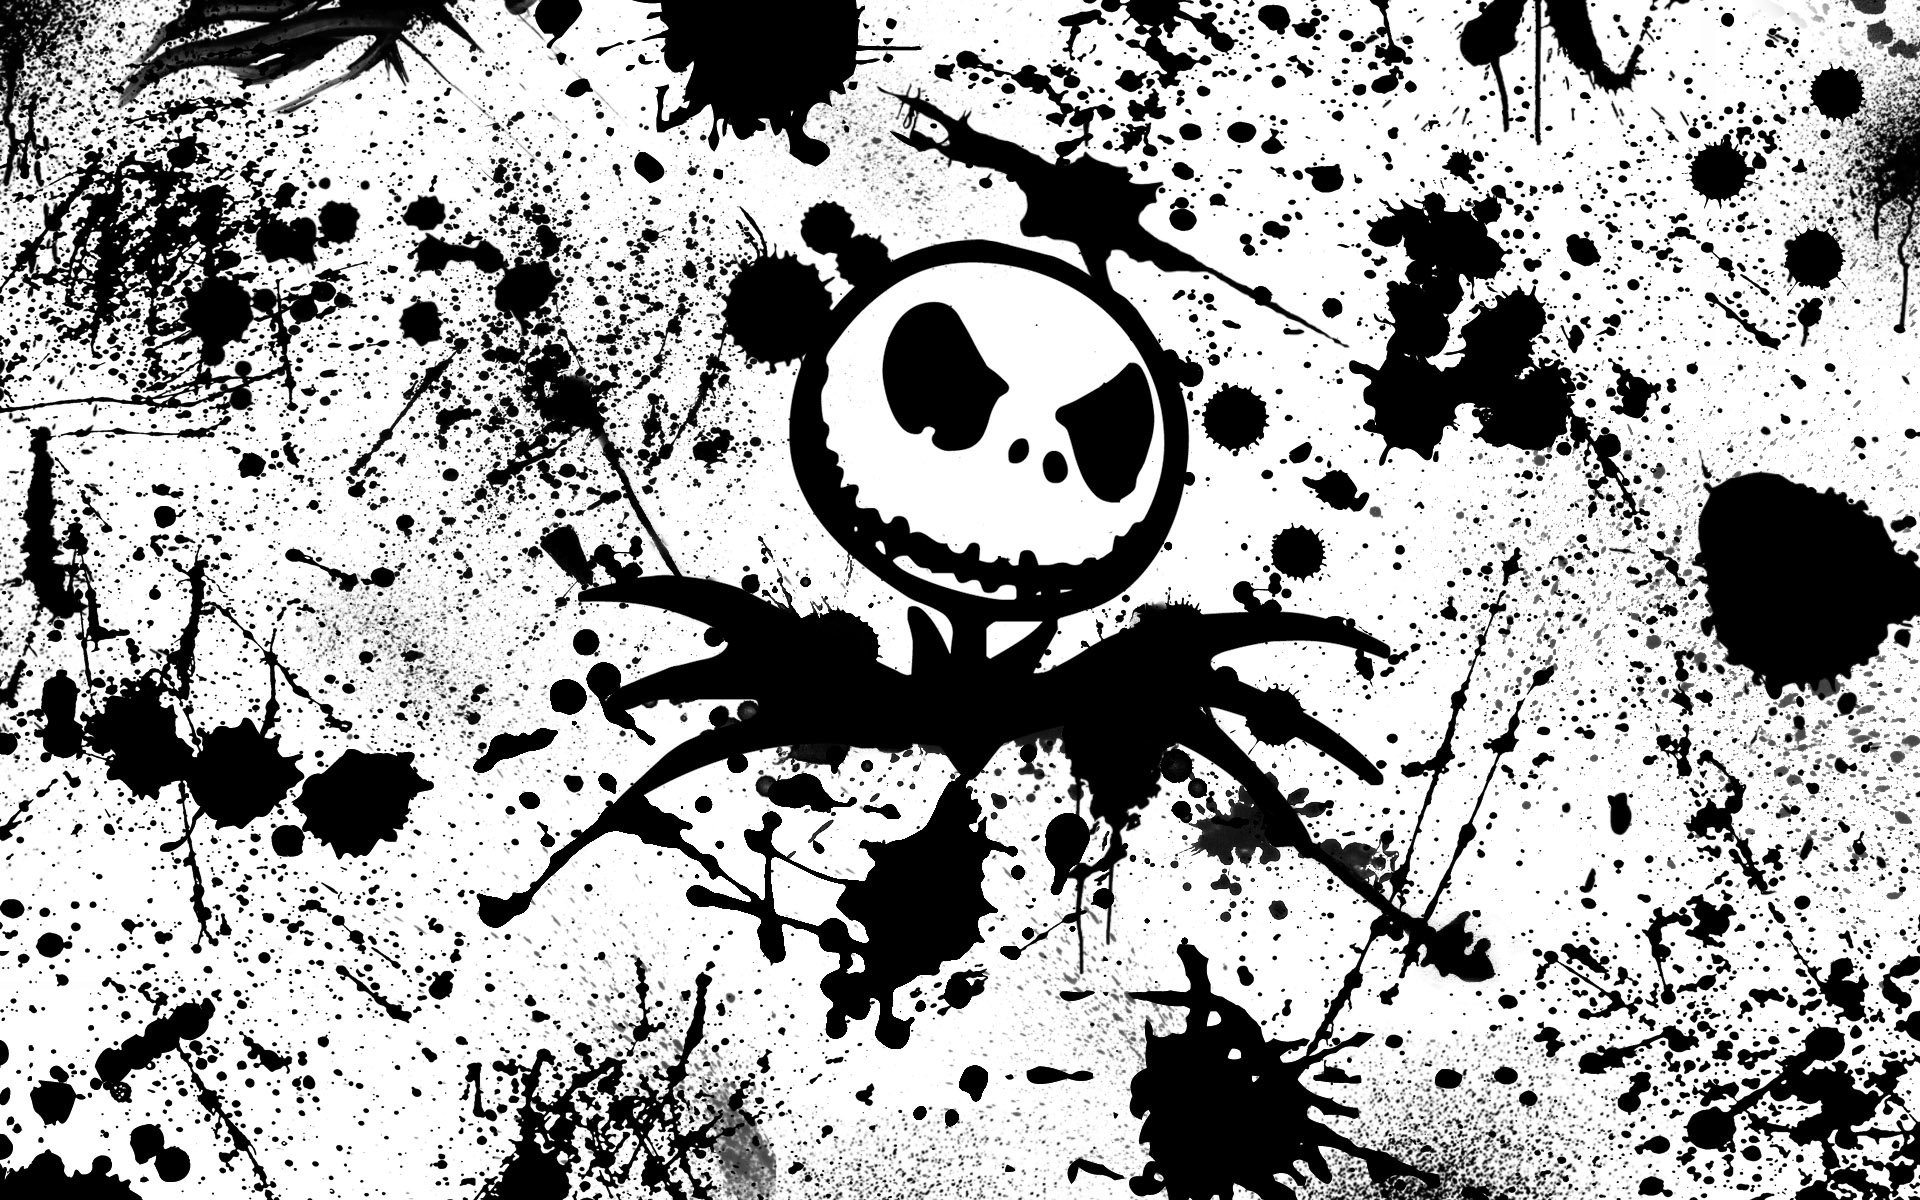 Nightmare Before Christmas Wallpaper Android.The Nightmare Before Christmas Backgrounds 61 Pictures